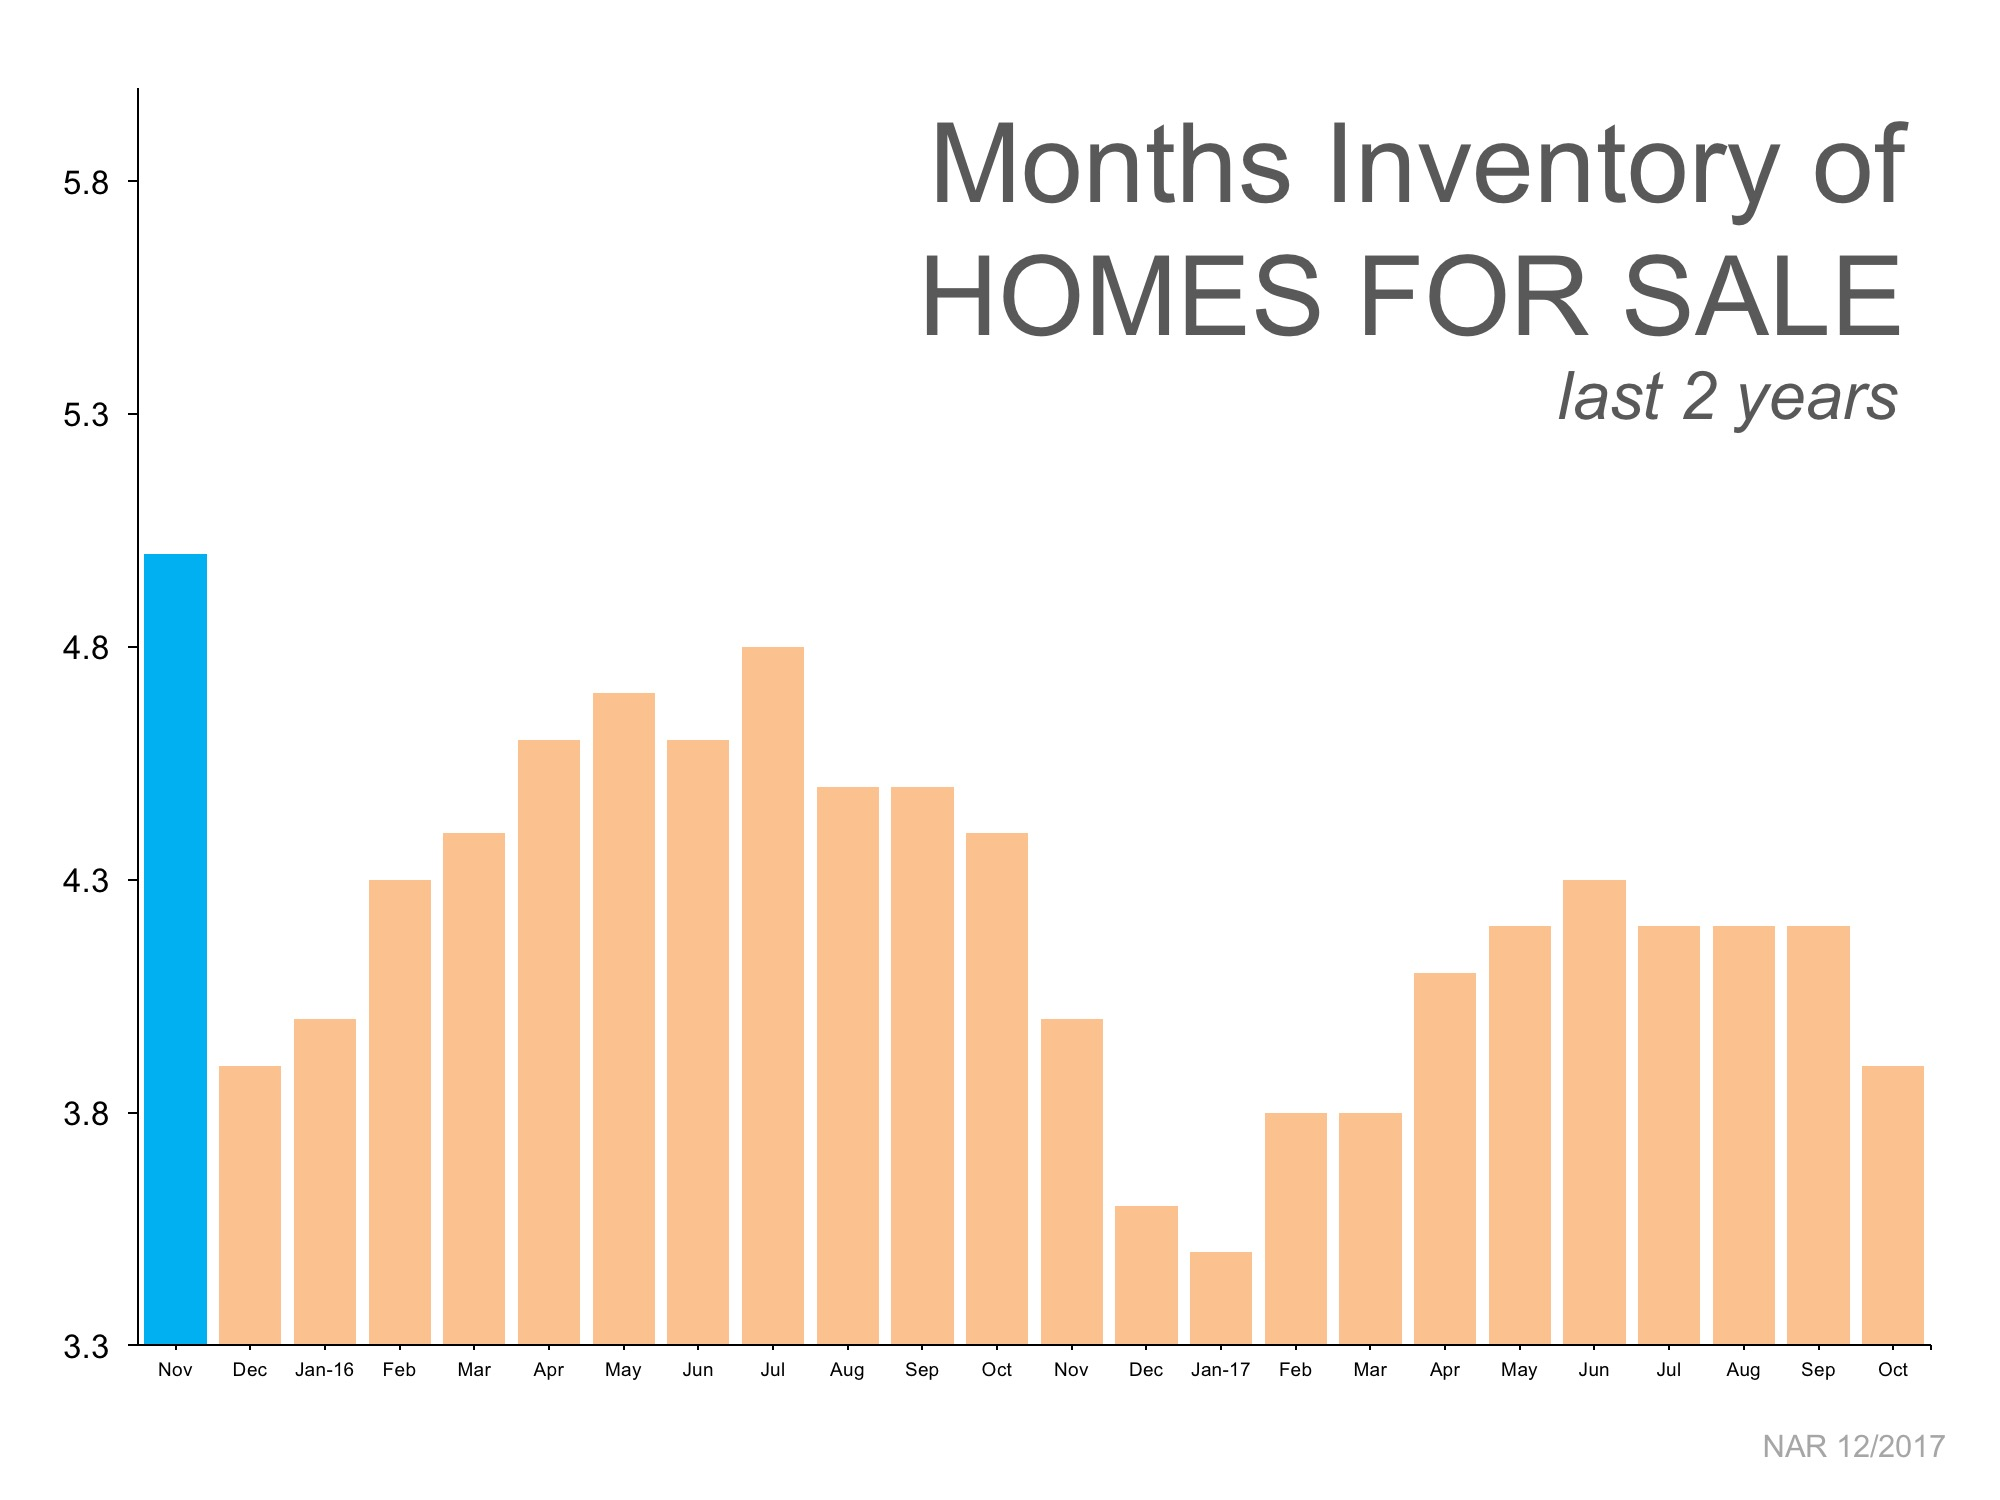 Home Inventory - Last 2 Years